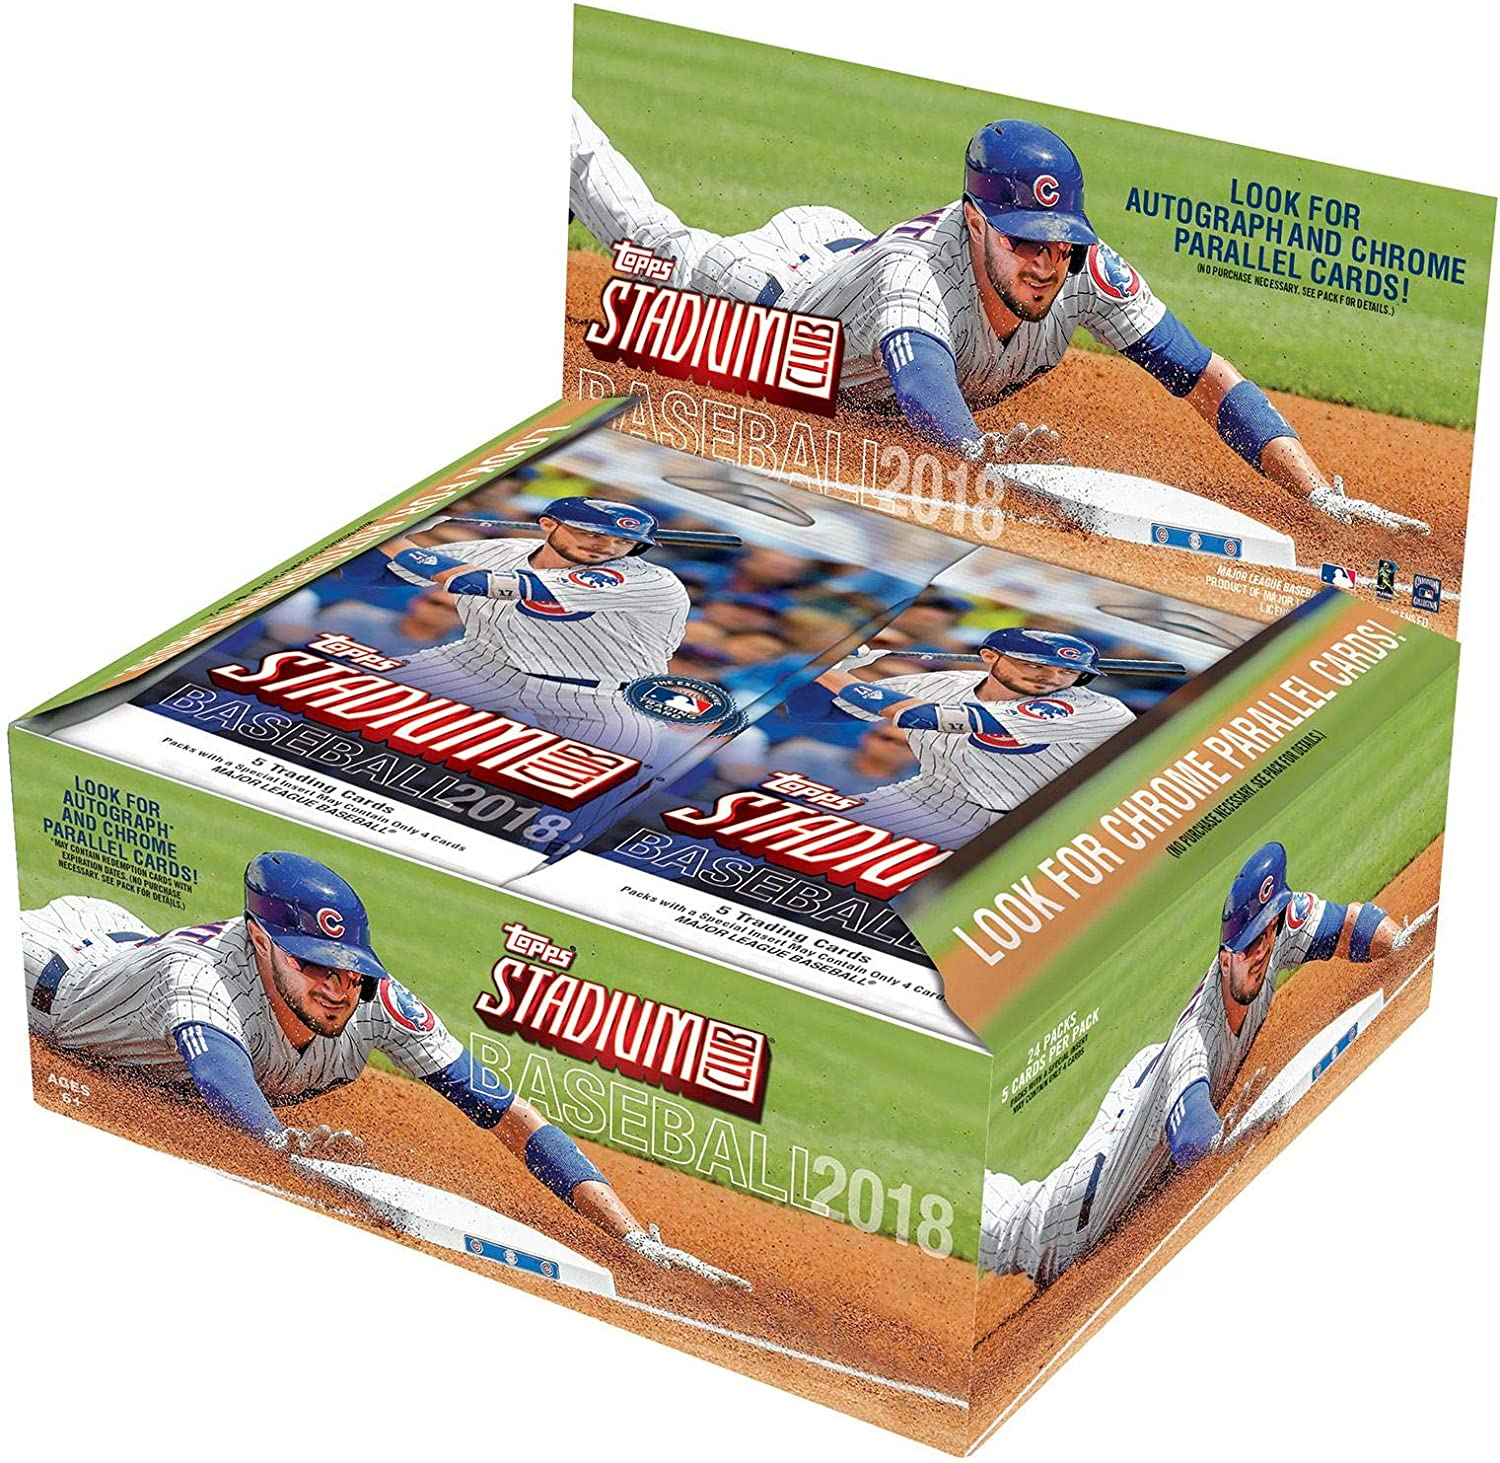 Fanatics Authentic Certified Sports Memorabilia 2018 Topps Stadium Club Factory Sealed 24 Pack Box Baseball Complete Sets